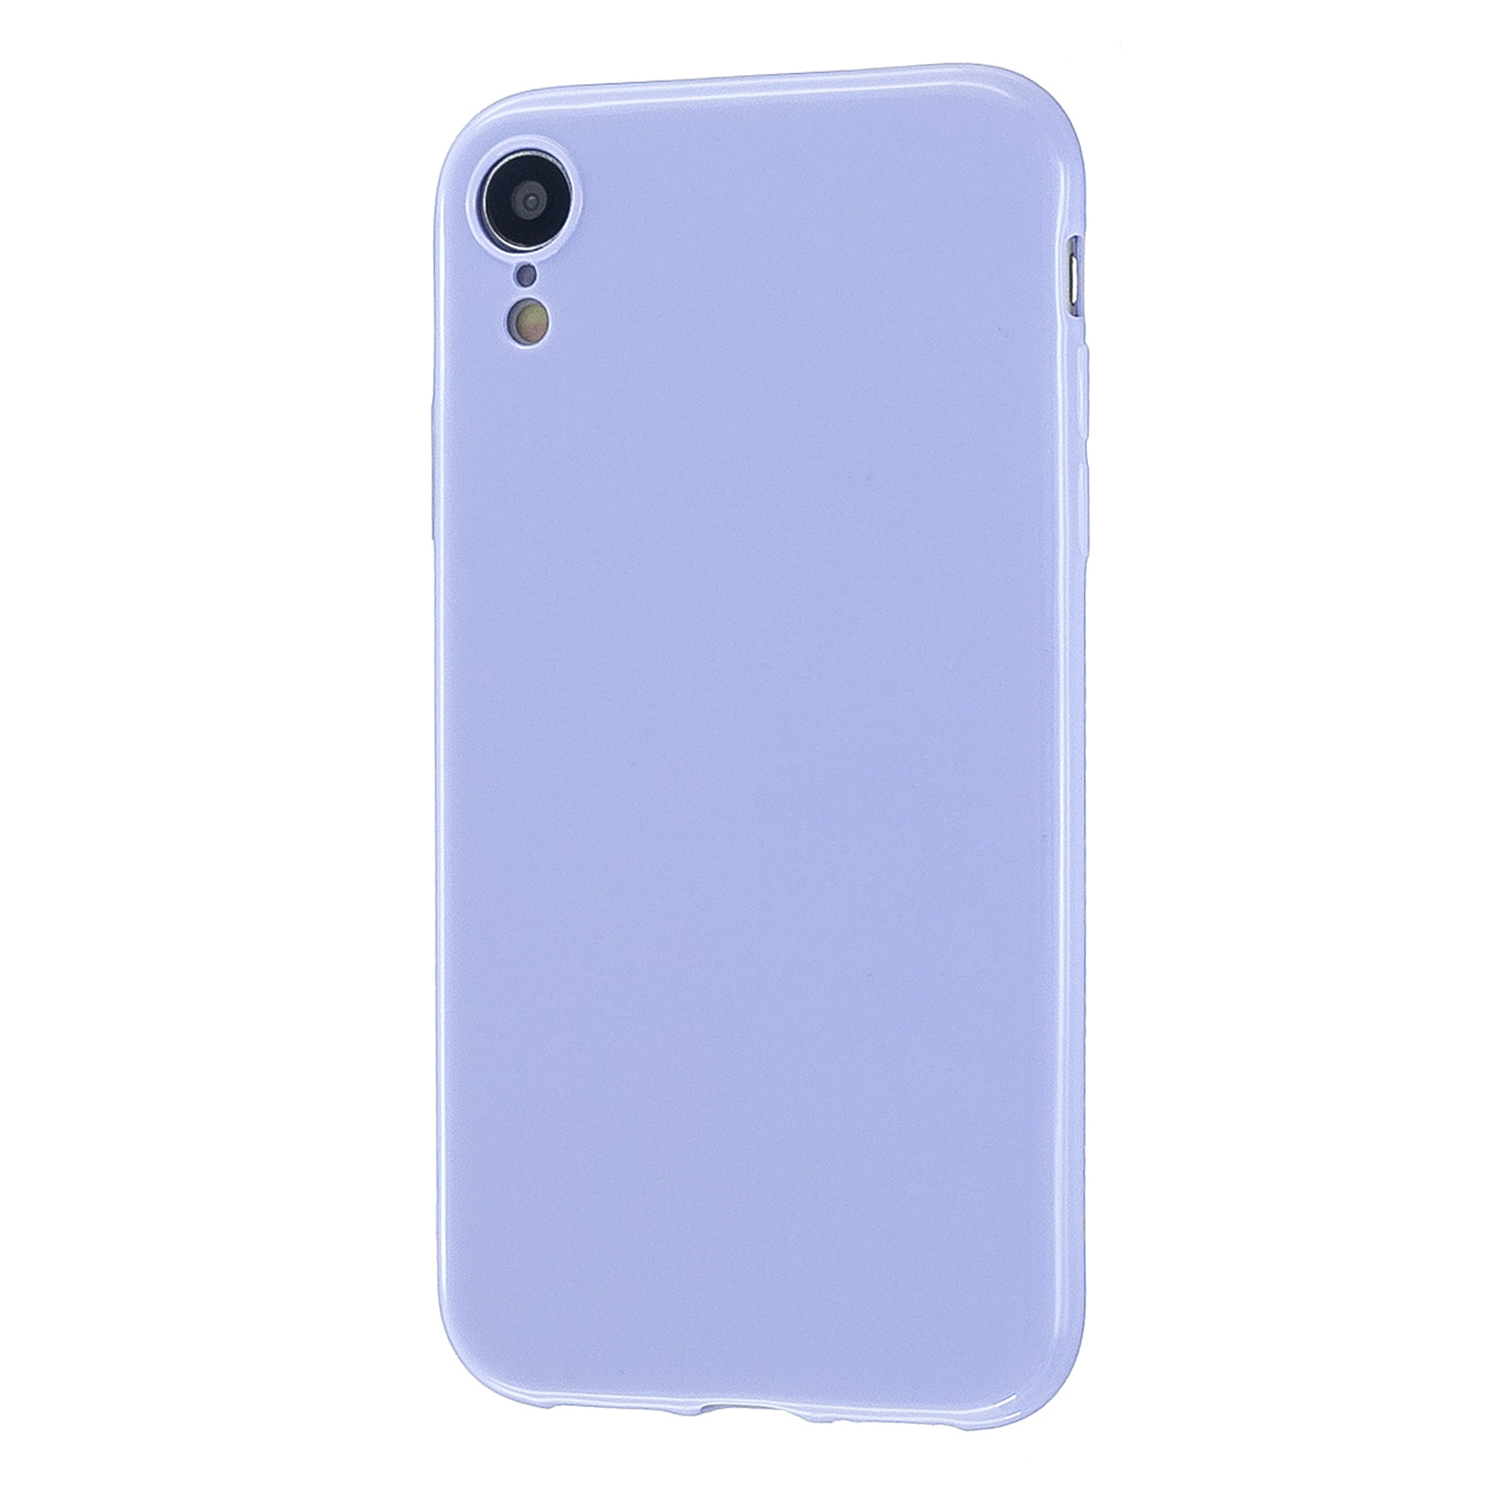 For iPhone X/XS/XS Max/XR  Cellphone Cover Slim Fit Bumper Protective Case Glossy TPU Mobile Phone Shell Taro purple